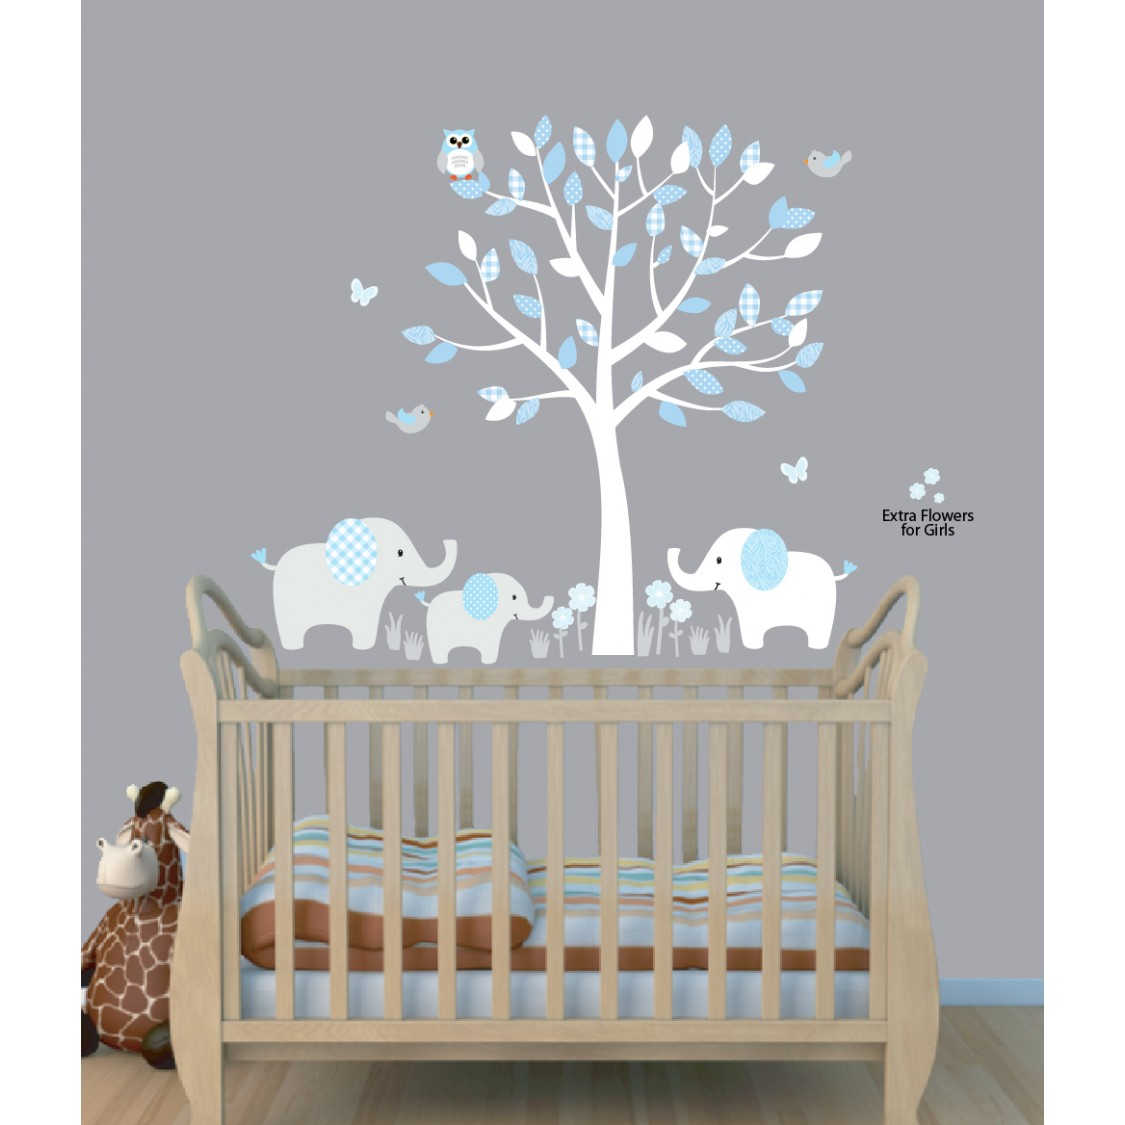 Blue Nursery Jungle Wall Decals With Elephant Decal For Boys Rooms